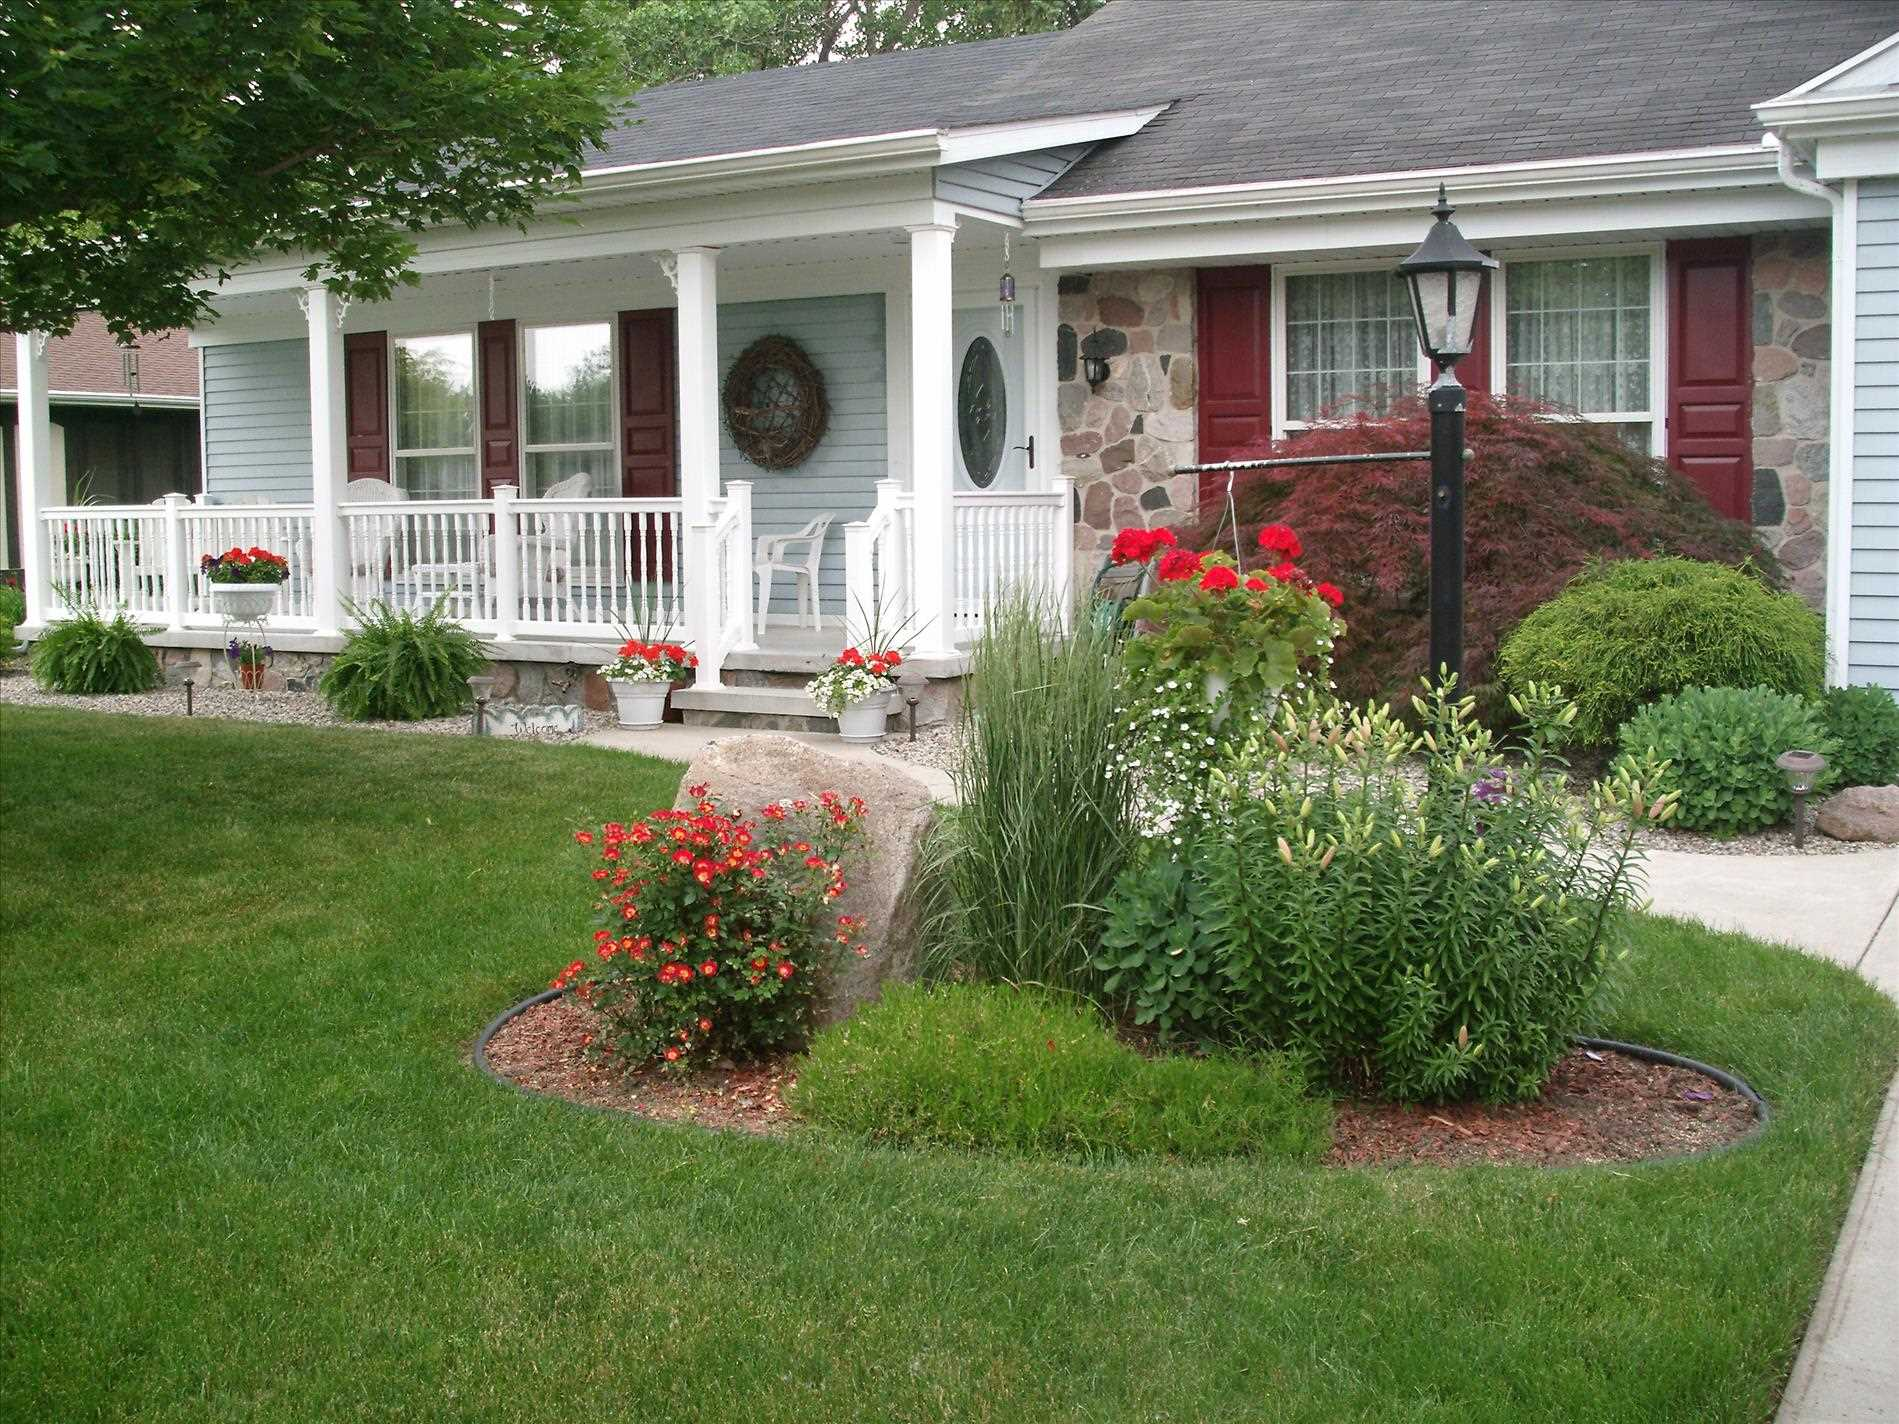 Instant Curb Appeal On A Budget That Pays Off Big When You Sell Your Home!